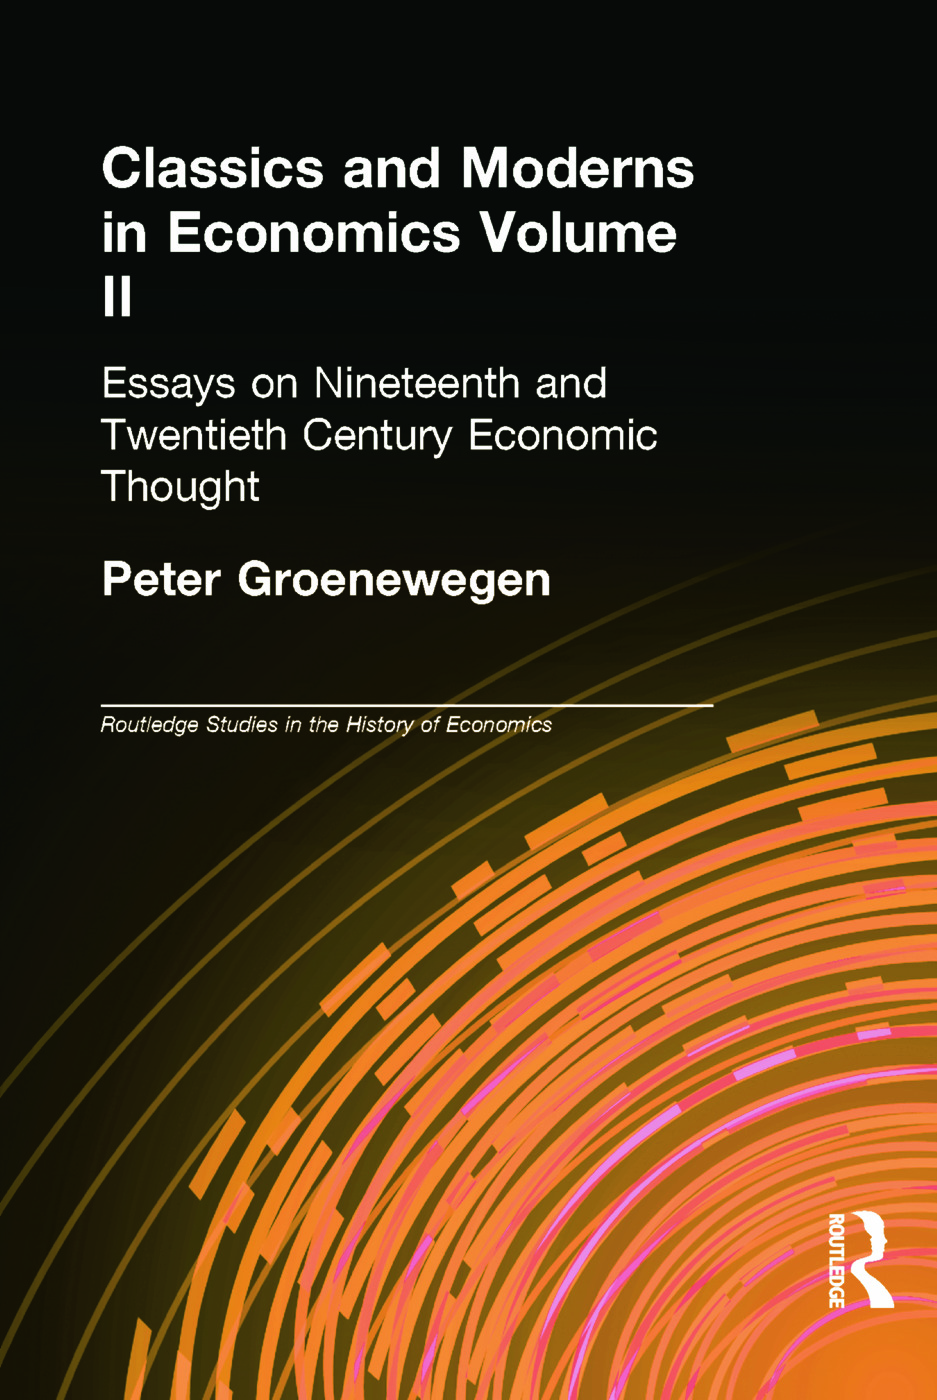 Alfred Marshall and the history of economic thought